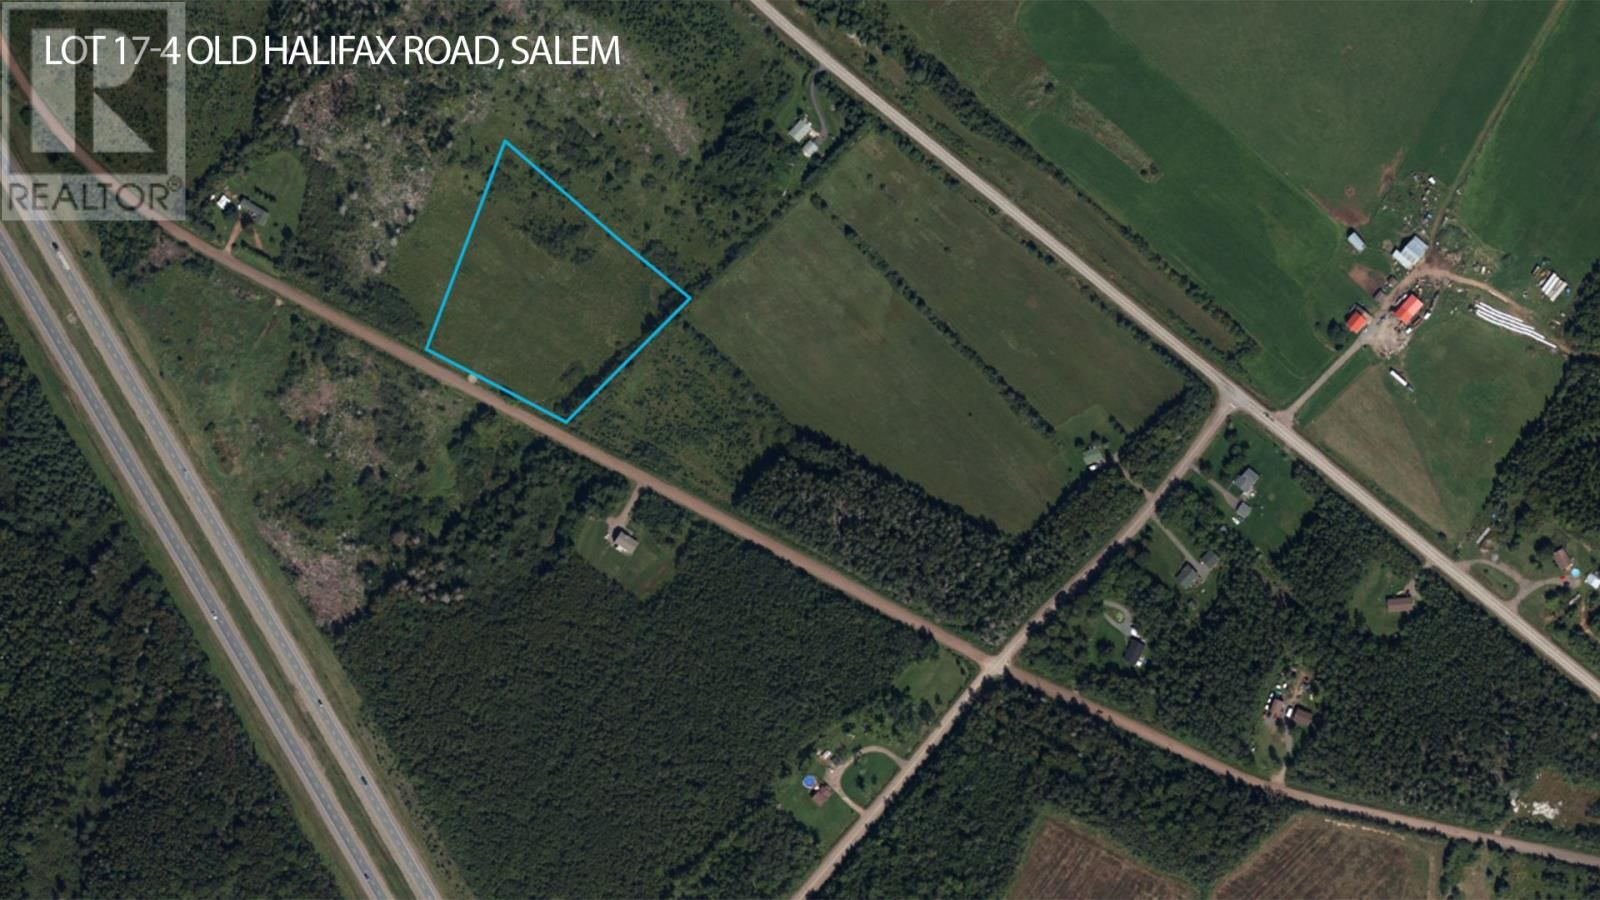 Main Photo: Lot 17-4 Old Halifax Road in Salem: Vacant Land for sale : MLS®# 202118377